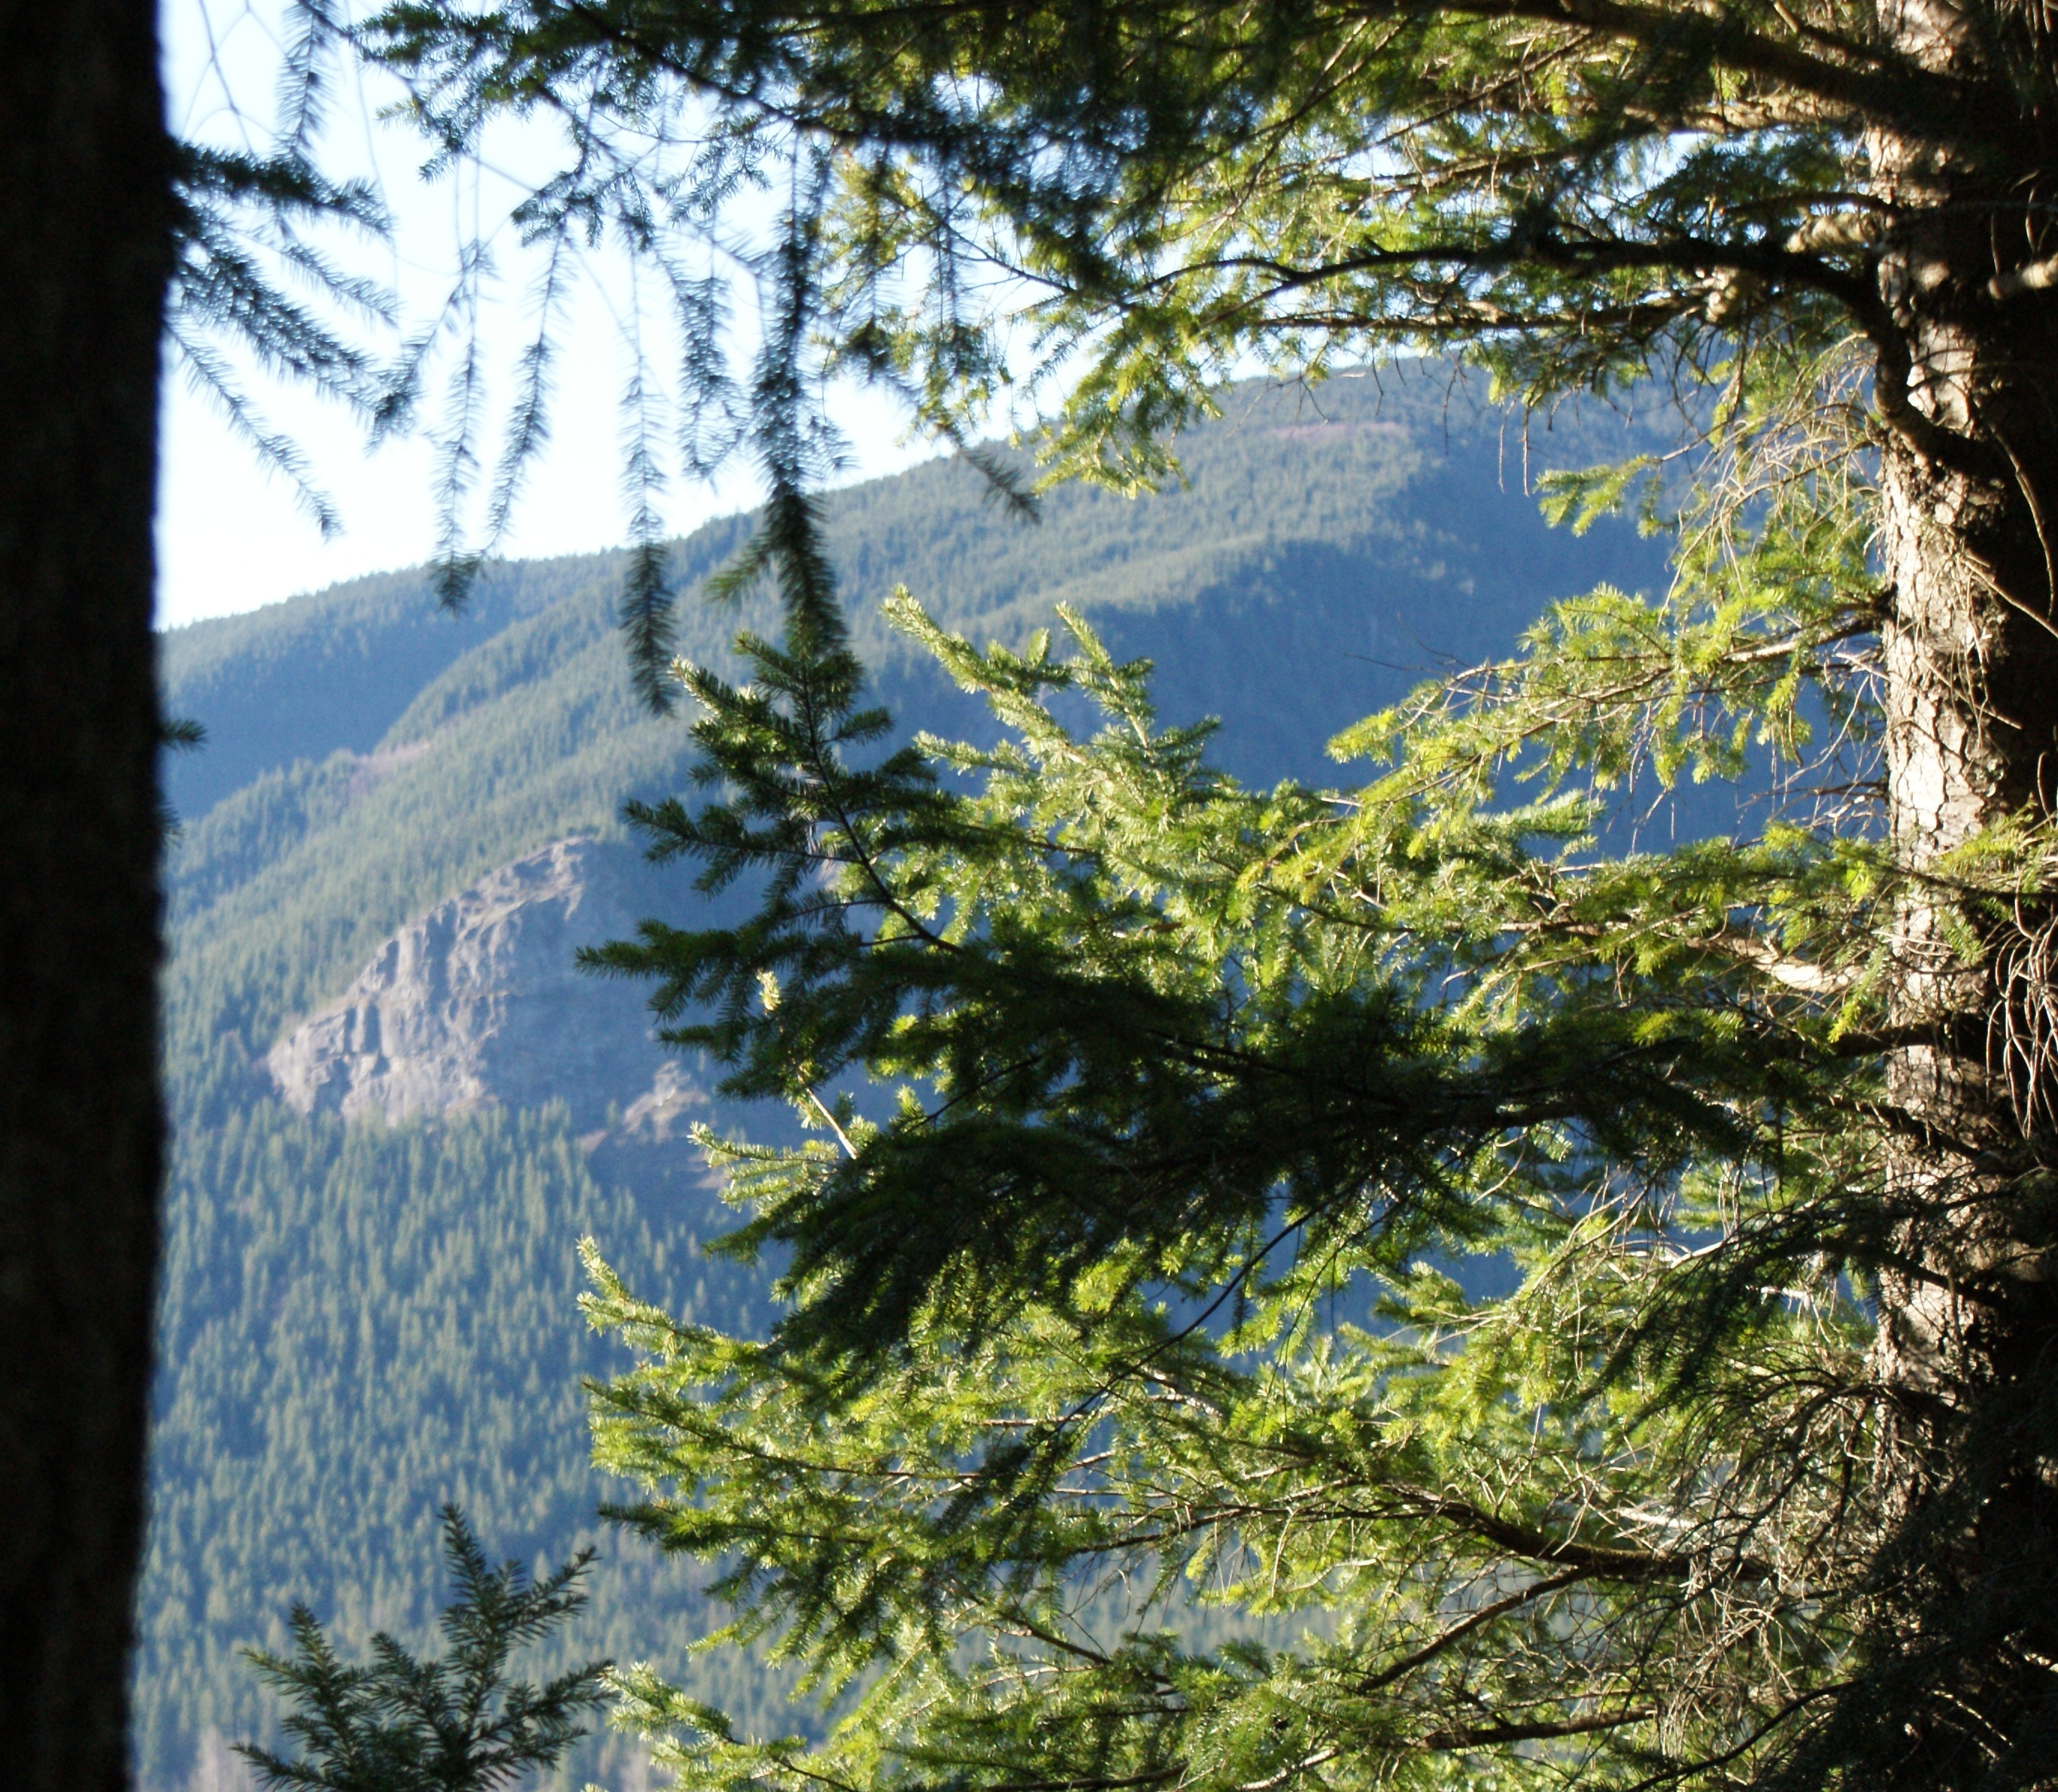 hiking with children, north bend wa, winter hikes with kids